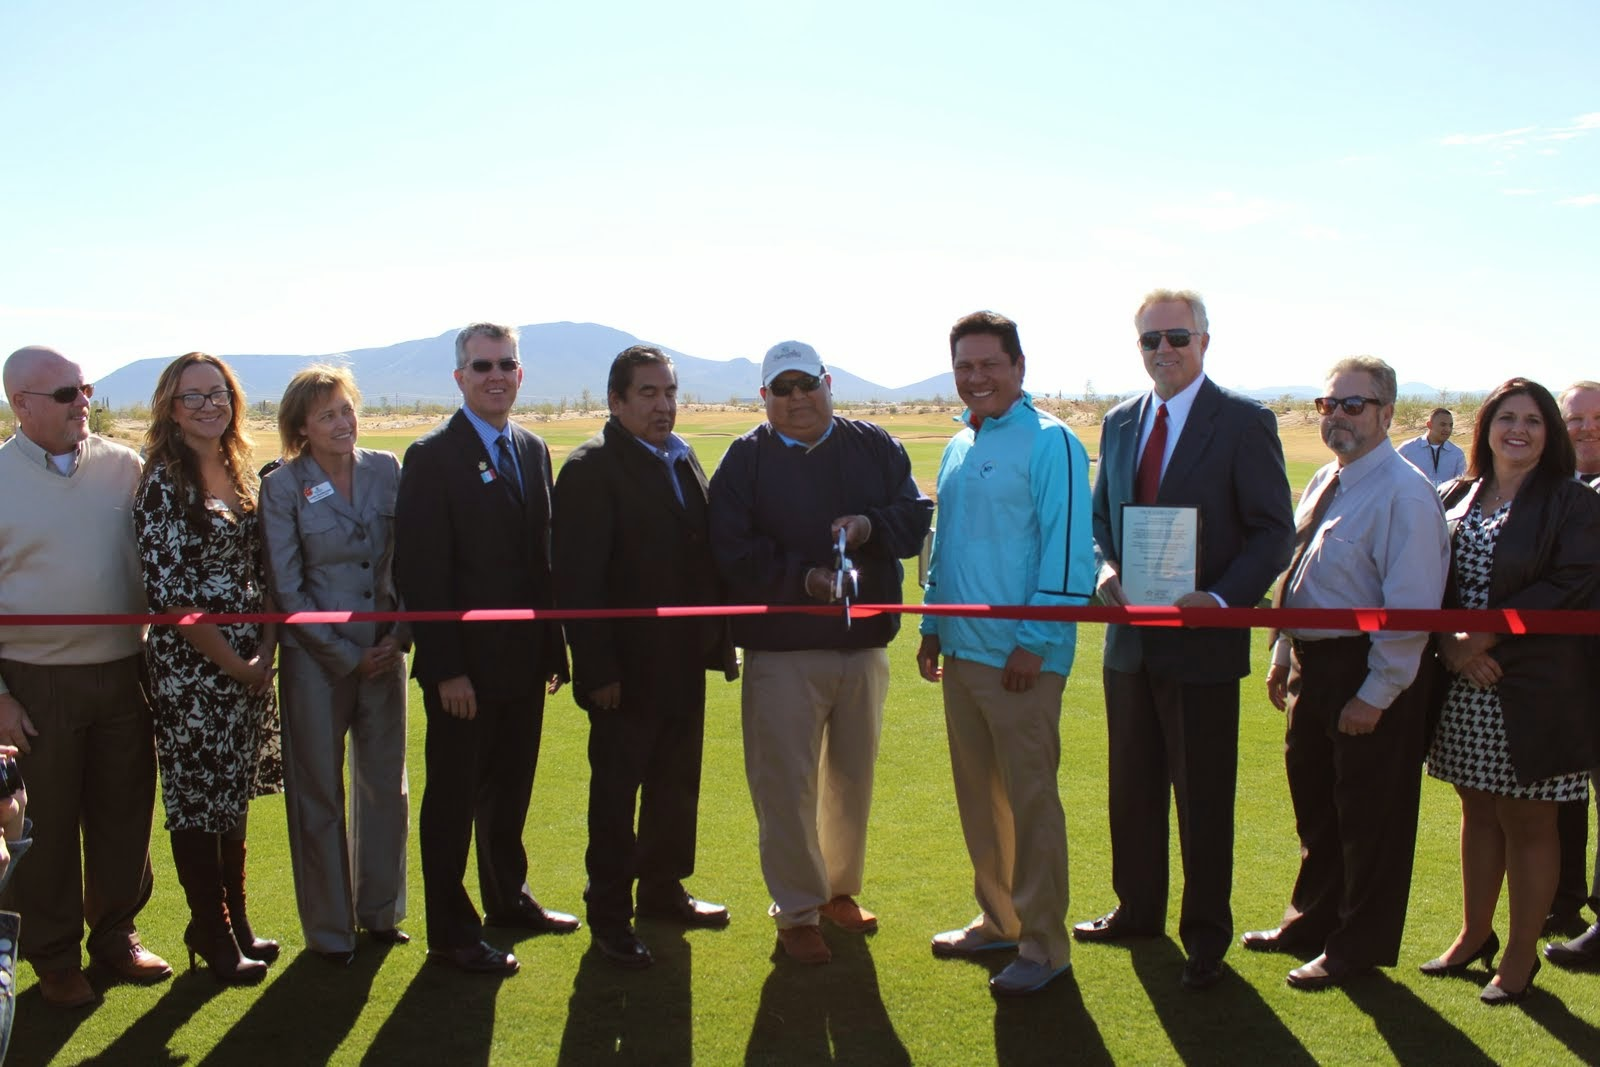 Begay III, Jim Burns, Peter Yucipicio and John Escalante officially open Sewailo Golf Club on December 12. Sewailo is the first new course in Arizona in over four years and was designed by Notah Begay and Ty Butler. The course will be managed by Casino Del Sol Resort in partnership with Troon Golf.